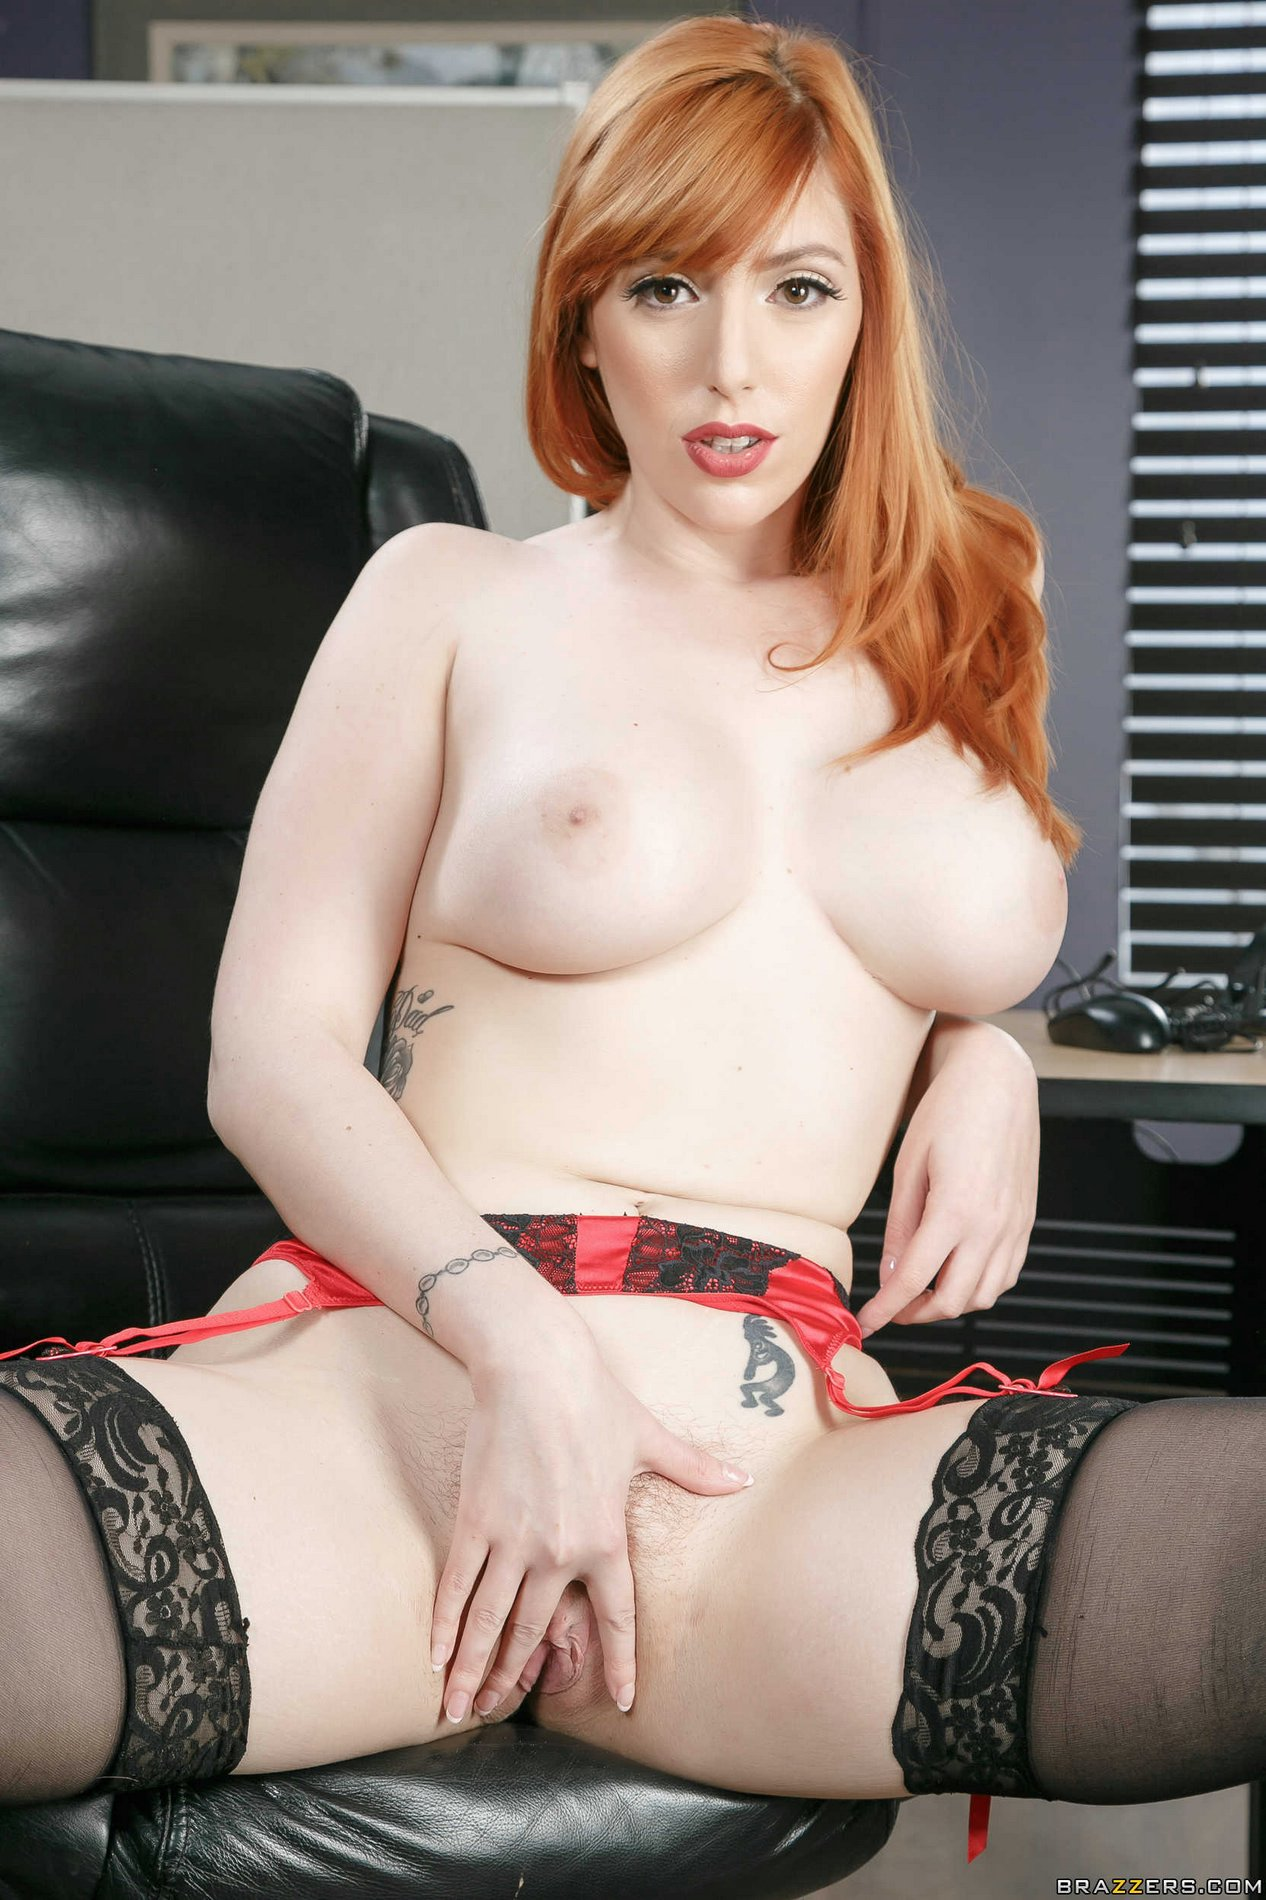 image Busty redhead lauren phillips first ever vid with vicky vette